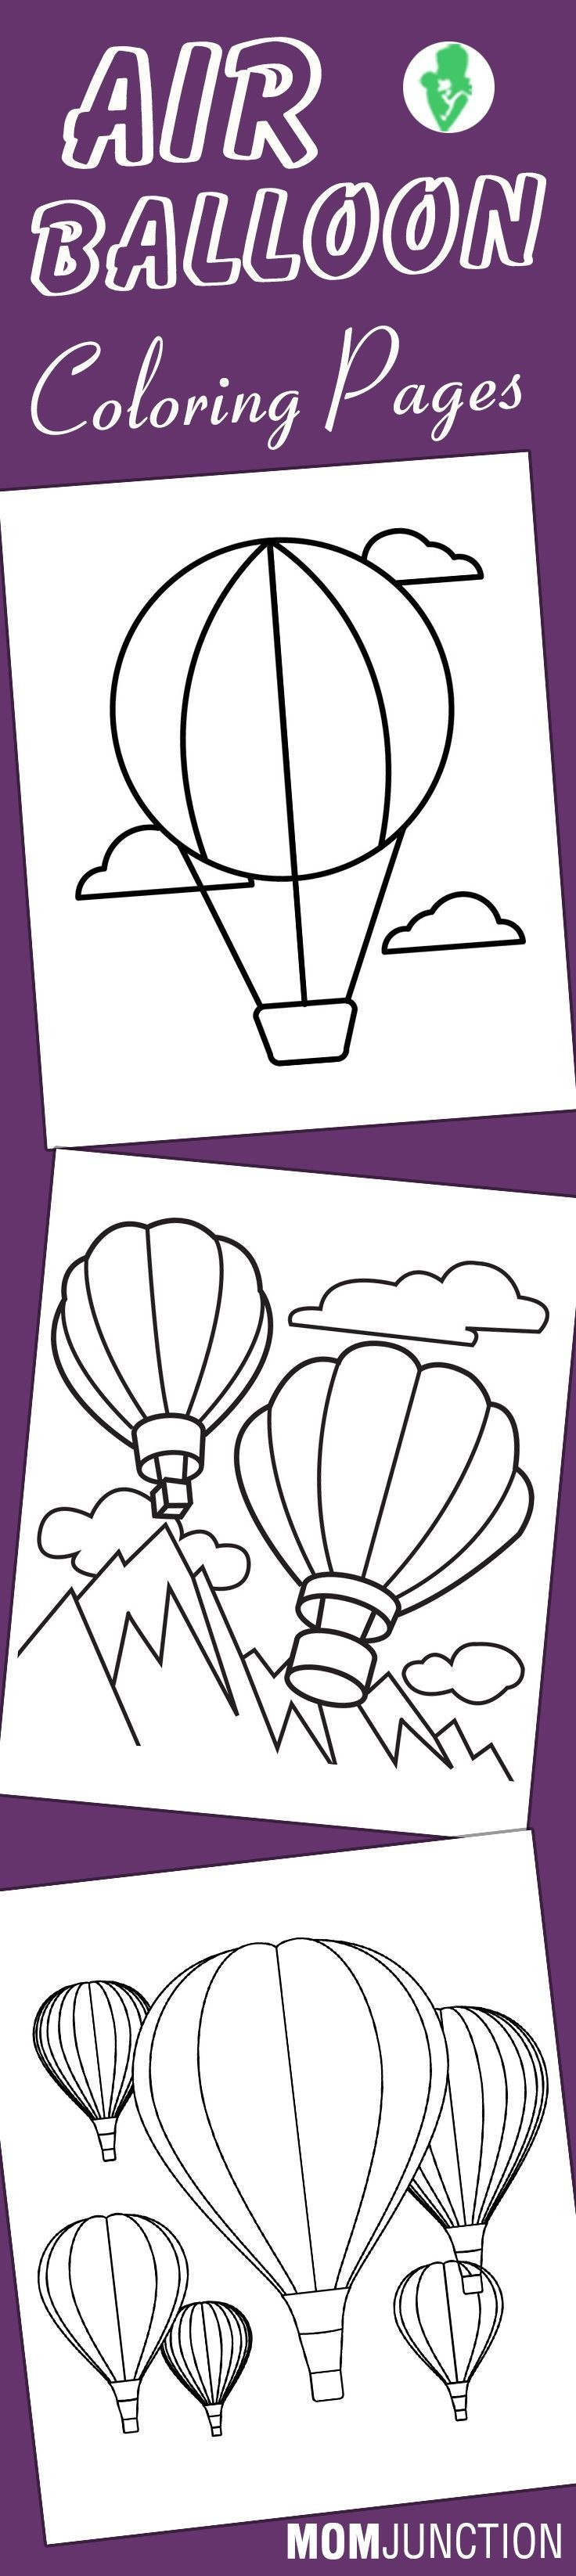 hot air balloon coloring pages Download-Balloon Coloring Pages Unique Printable Hot Air Balloon Coloring 15-b